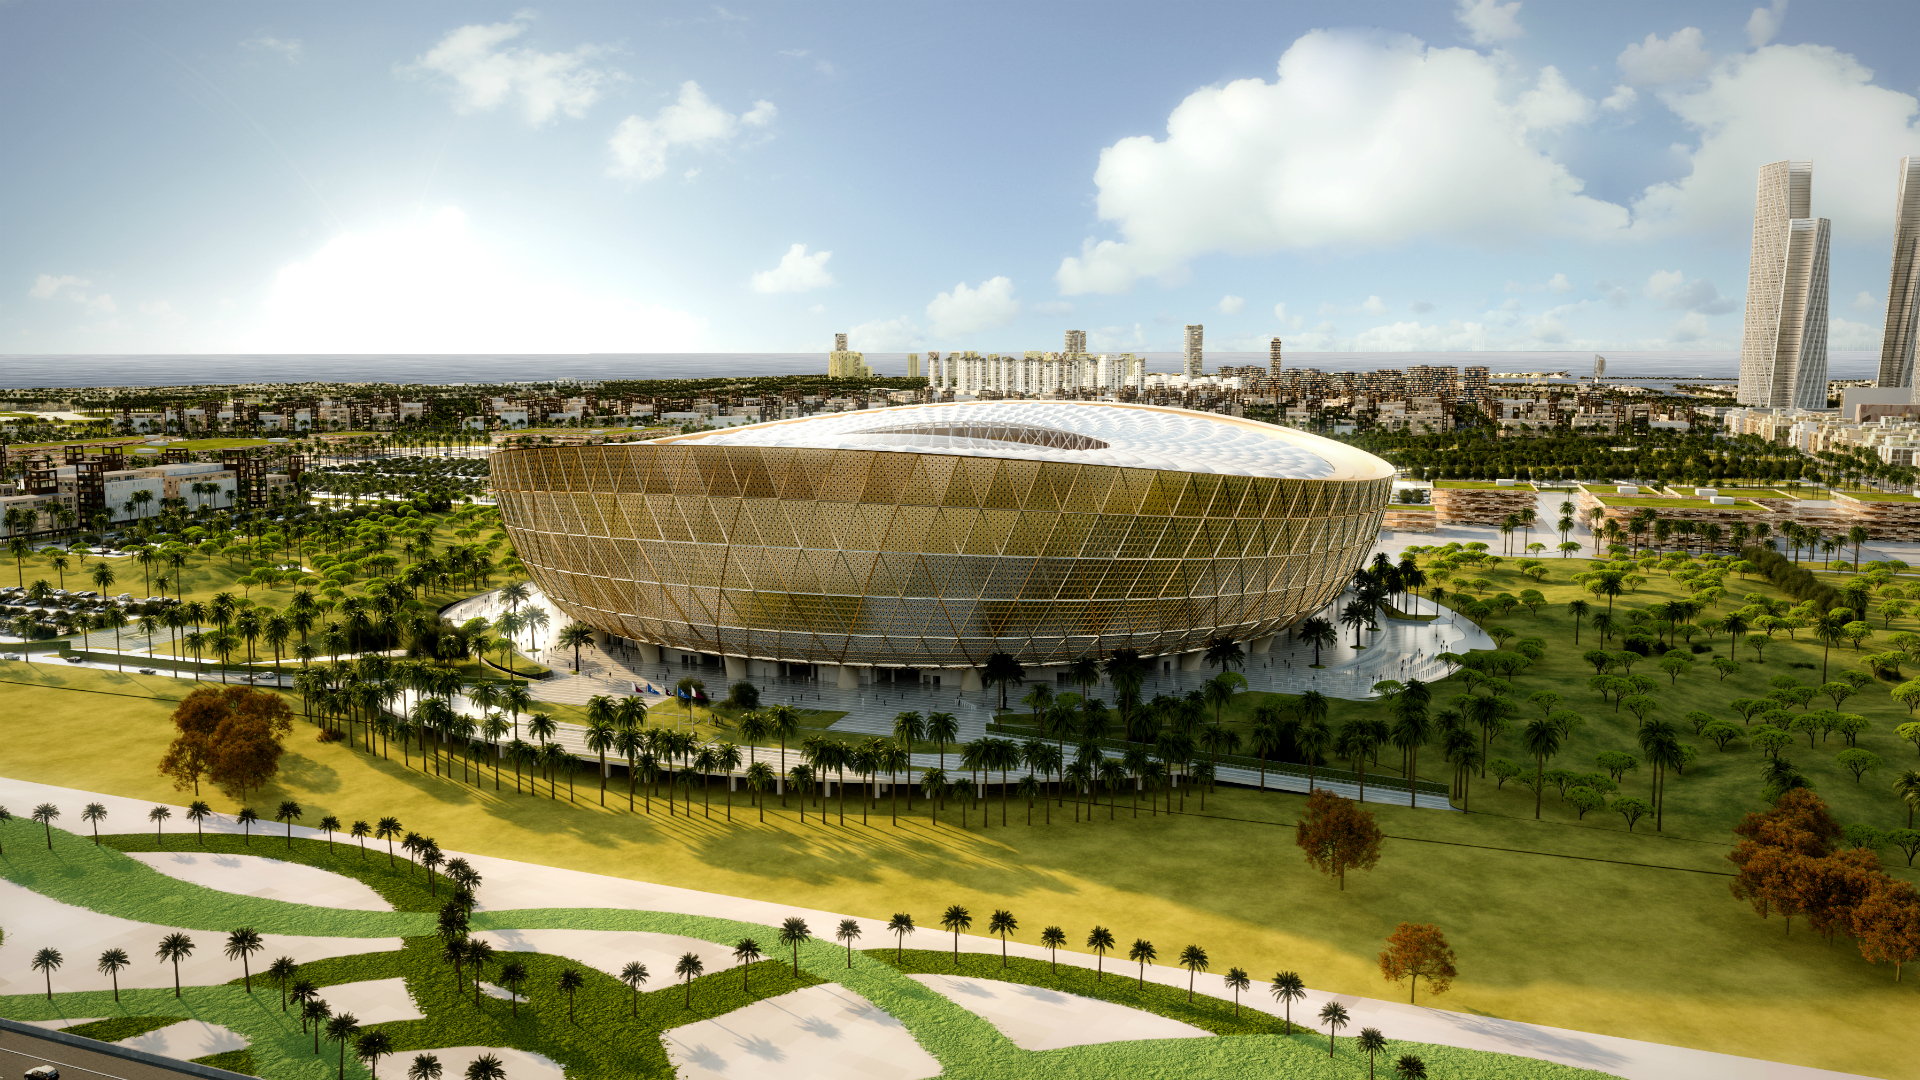 AVITENG works with Belden and IVOX for Qatar 2022 World Cup Stadiums